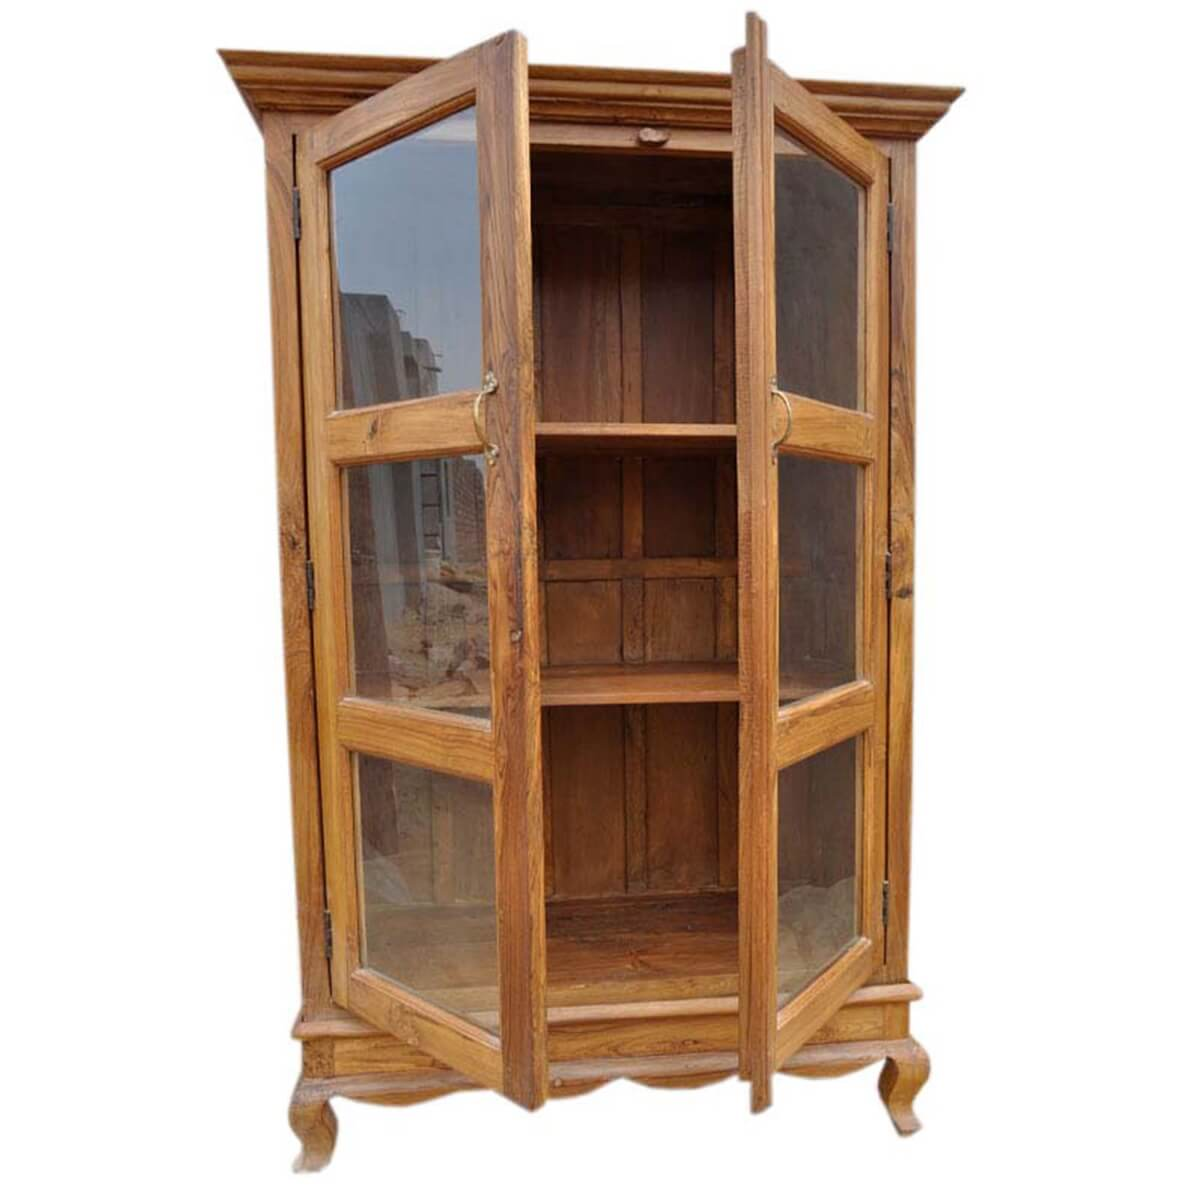 Solid Wood Bookcases With Doors ~ Inglis solid wood glass door freestanding bookcase